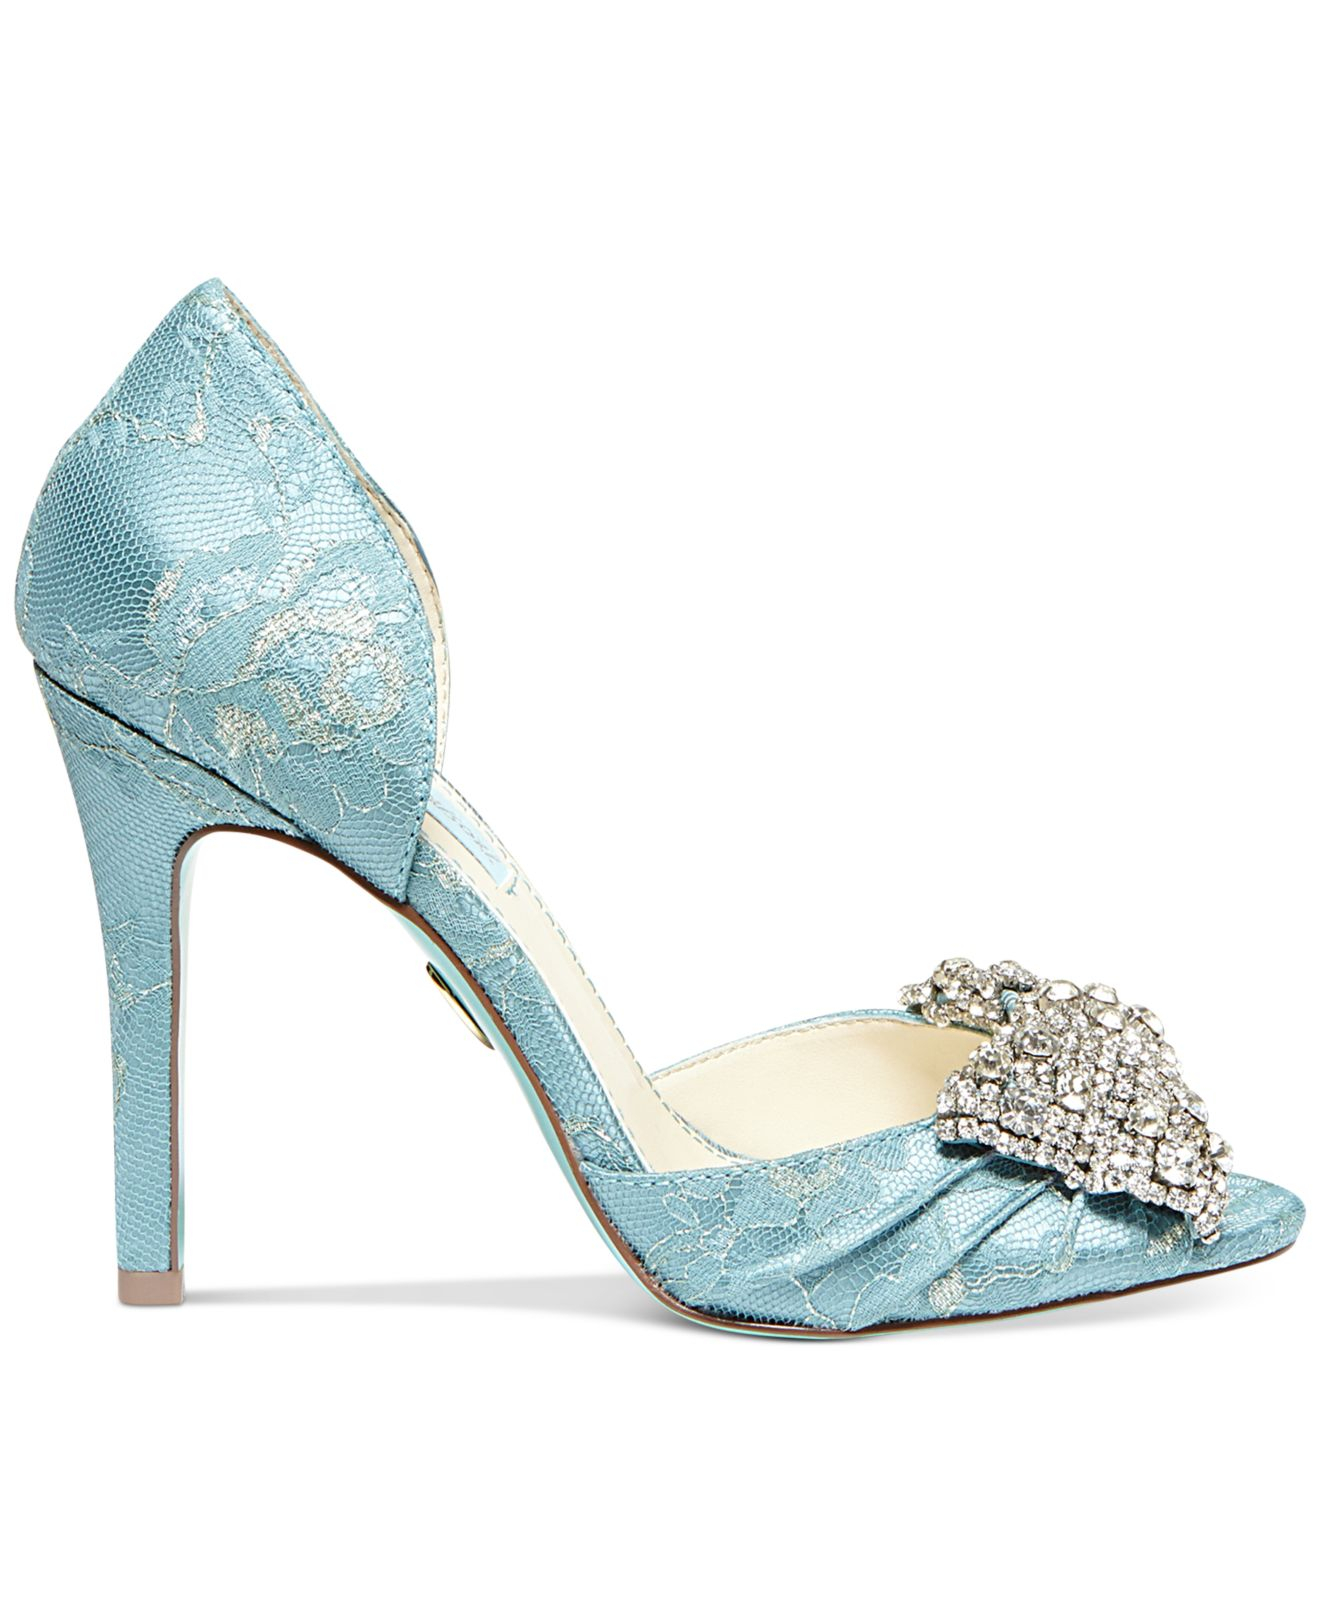 Lyst - Betsey Johnson Blue By Gown Evening Pumps in Blue